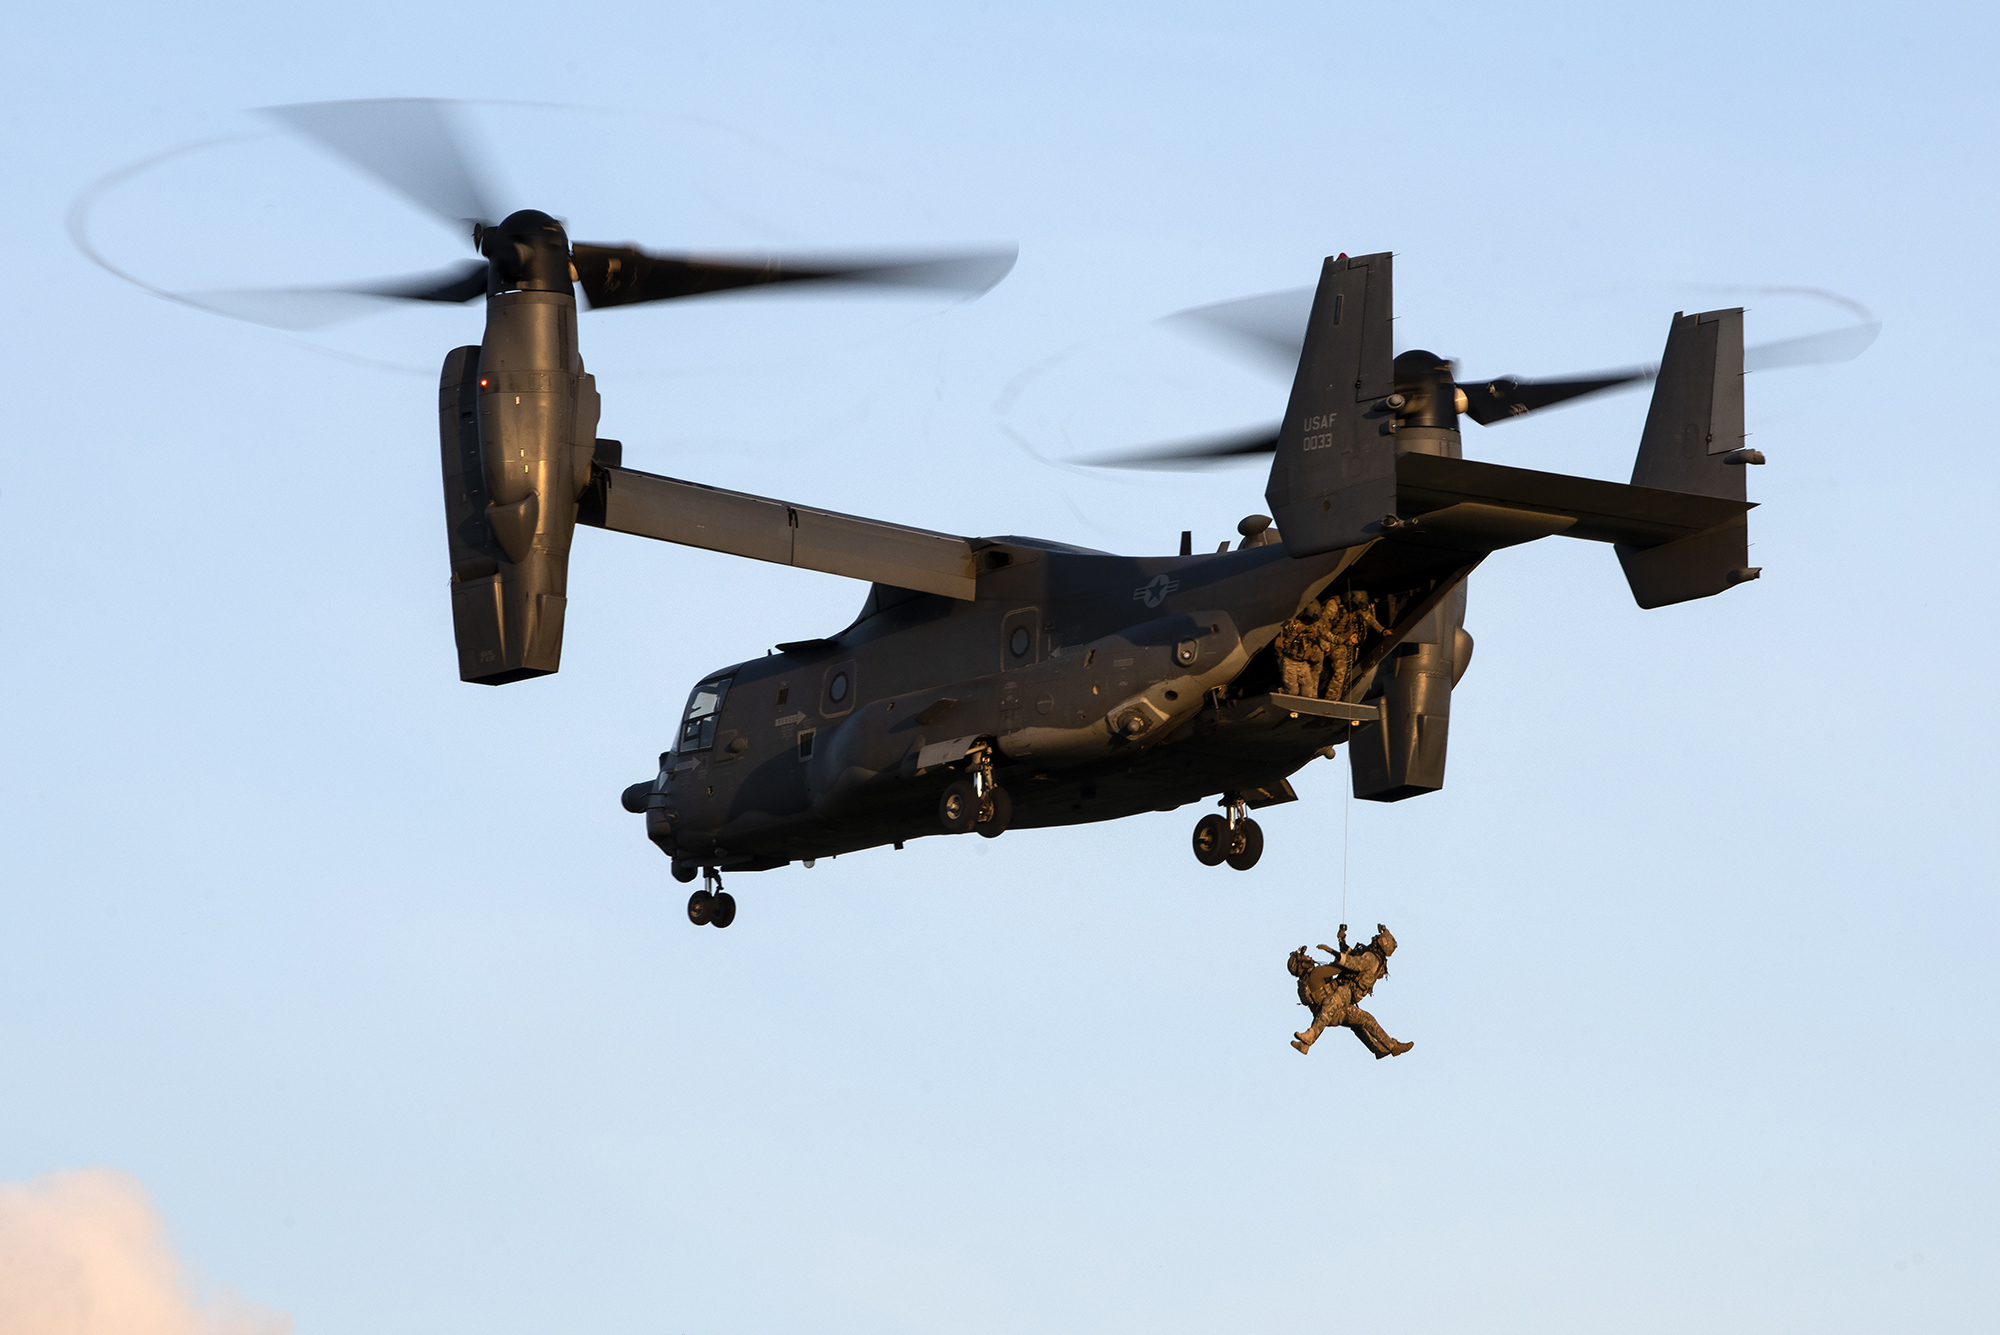 Special tactics operators assigned to the 321st Special Tactics Squadron tandem hoist into a CV-22B Osprey during a training exercise near RAF Mildenhall, United Kingdom, April 15, 2021. (Tech. Sgt. Westin Warburton/Air Force)